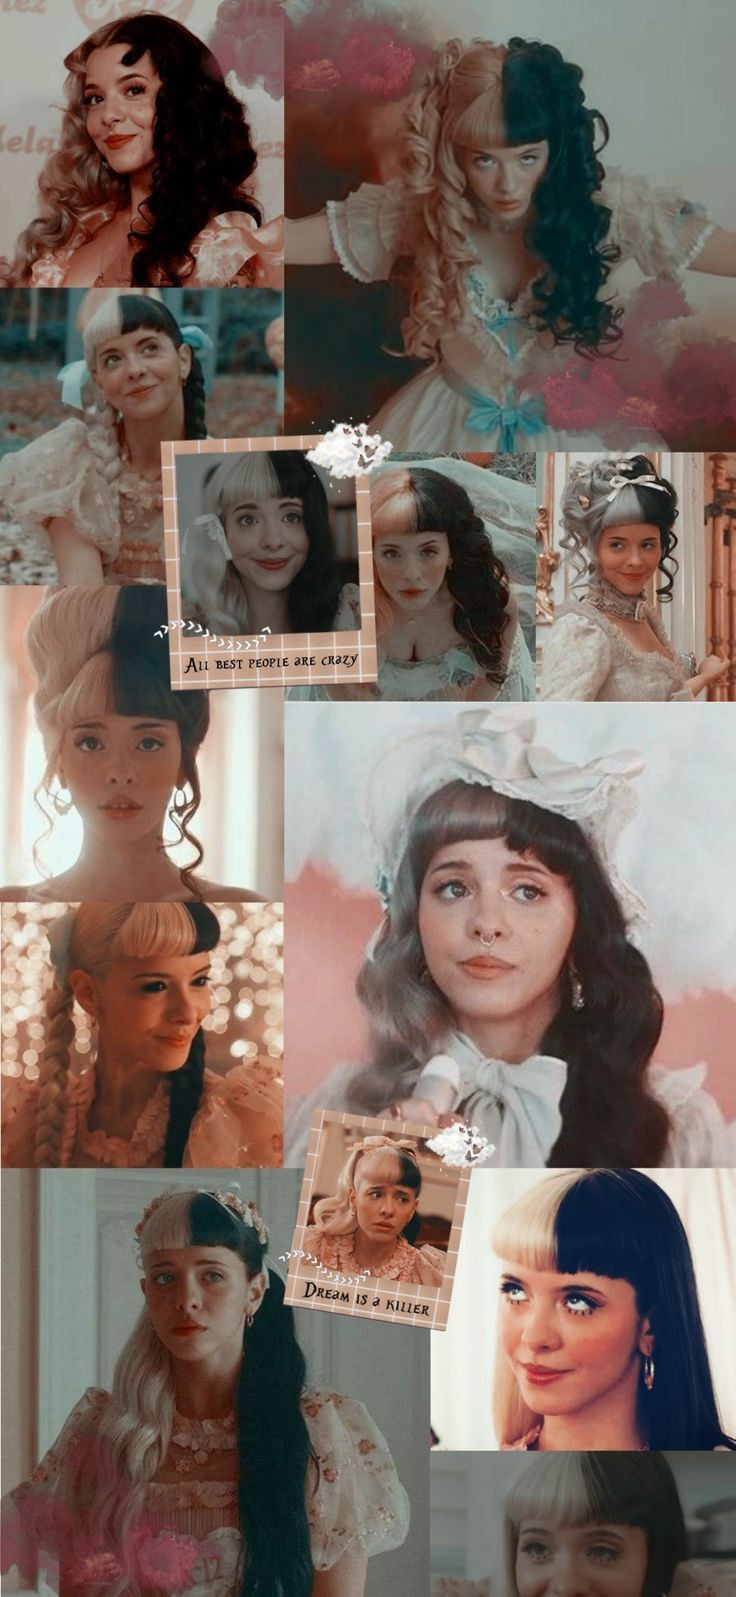 Pin By Hey Himiko On Meus Wallpapers Melanie Martinez Melanie Martinez Merch Melanie Martinez Photography